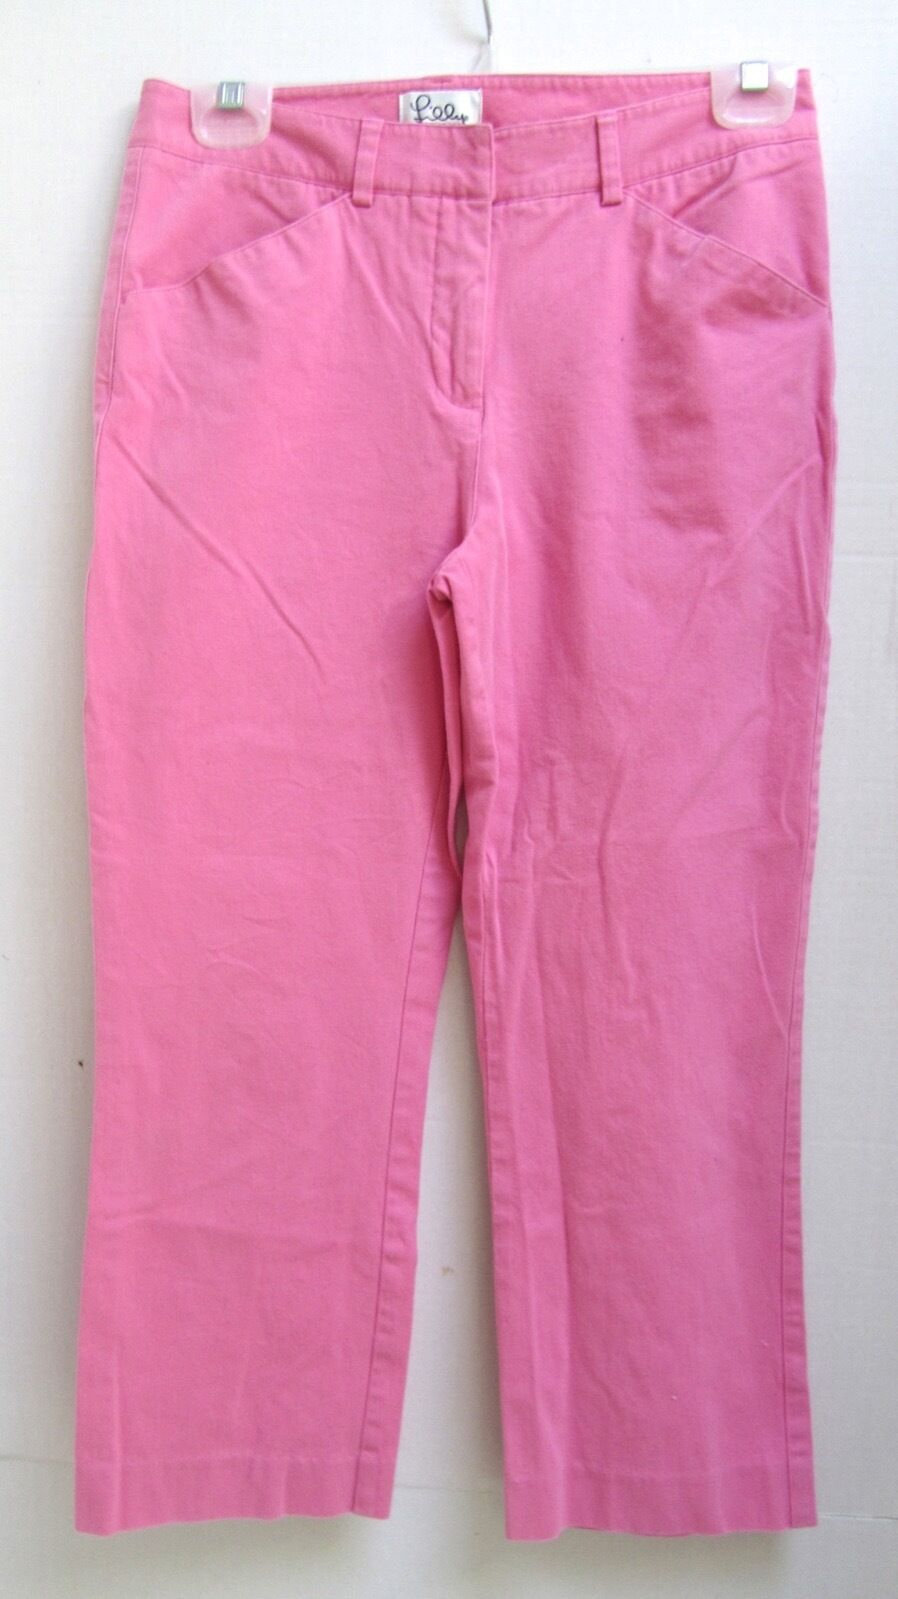 Lilly Pulitzer Pink Cotton Spandex Stretch Jeans Pants 2P 2 P EXC